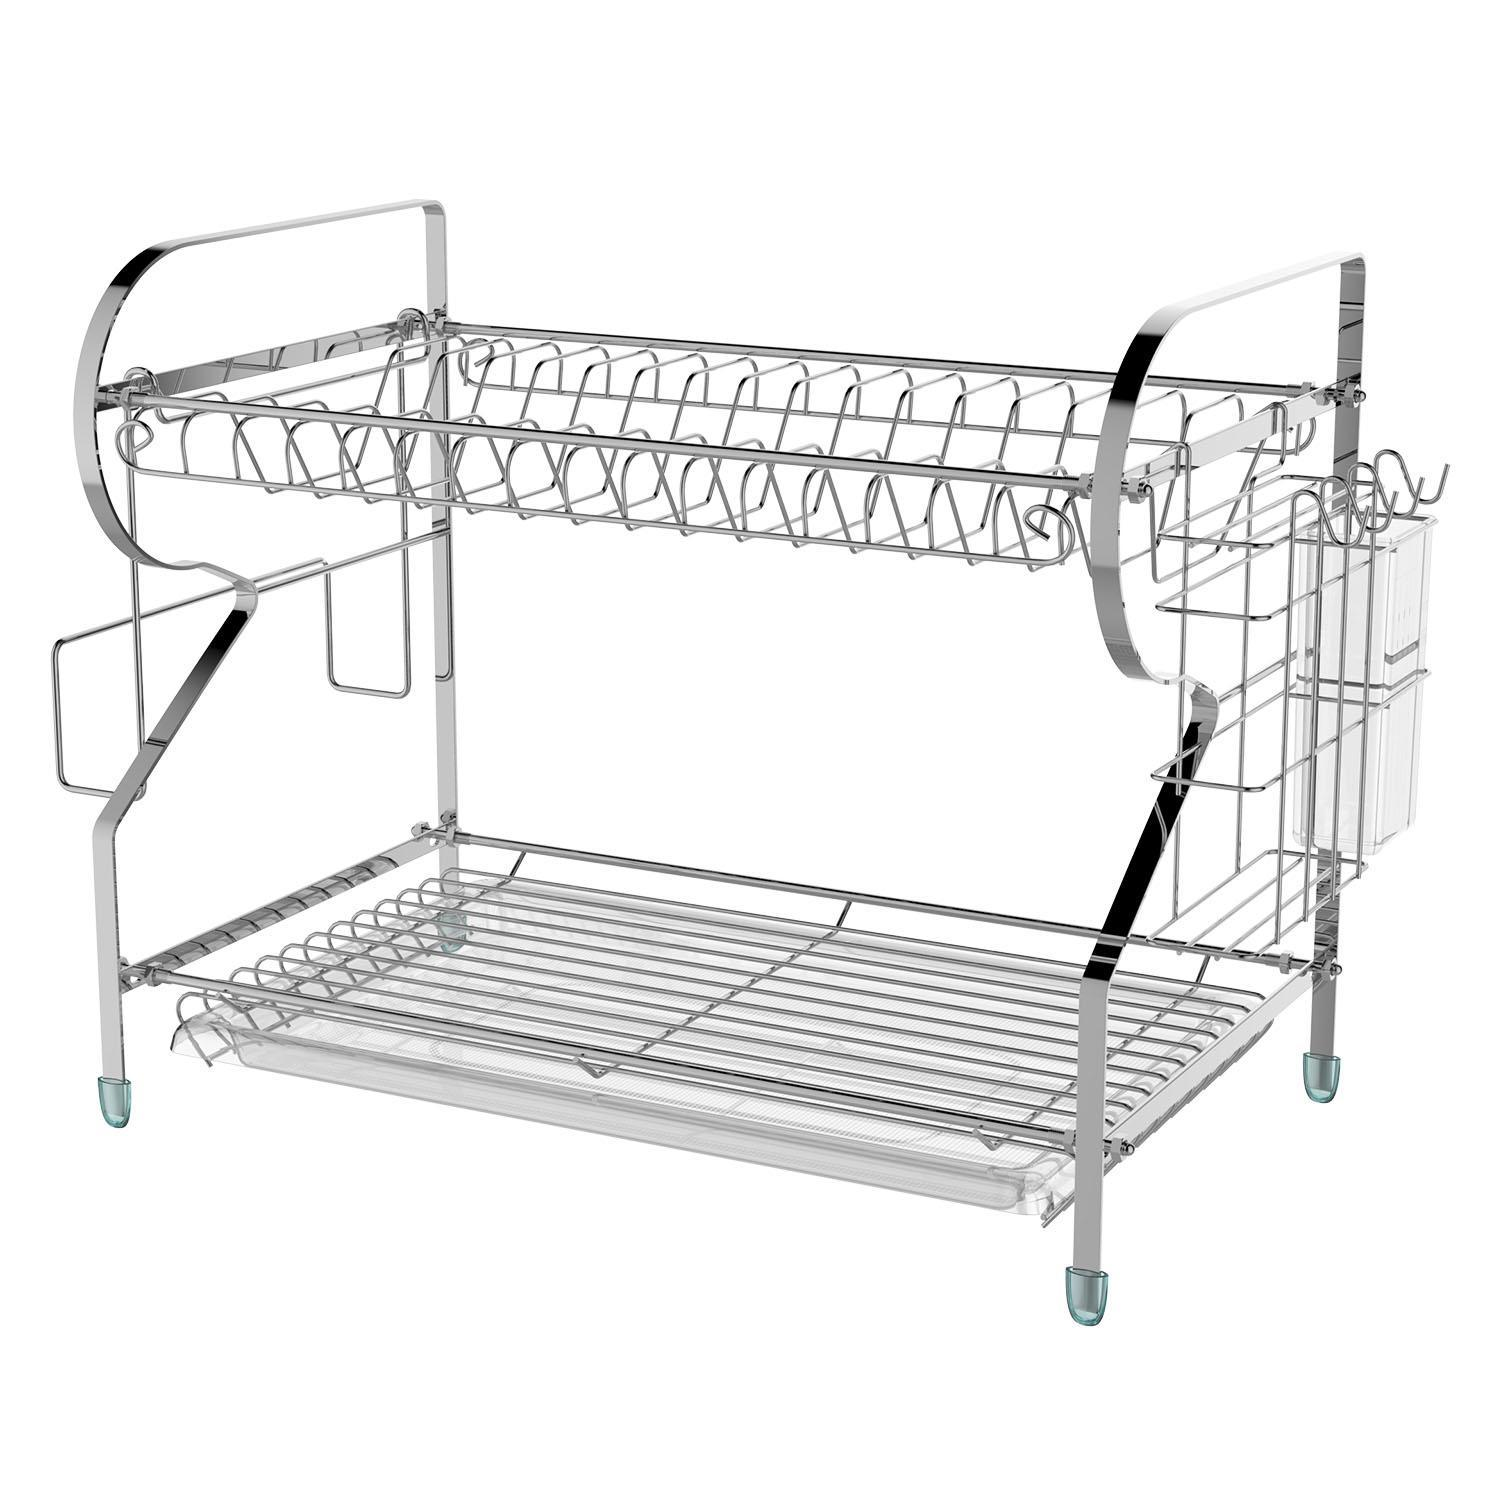 Kitchenware Tools Chef 2 Level Dish Rack Storage with Drying Basket 1